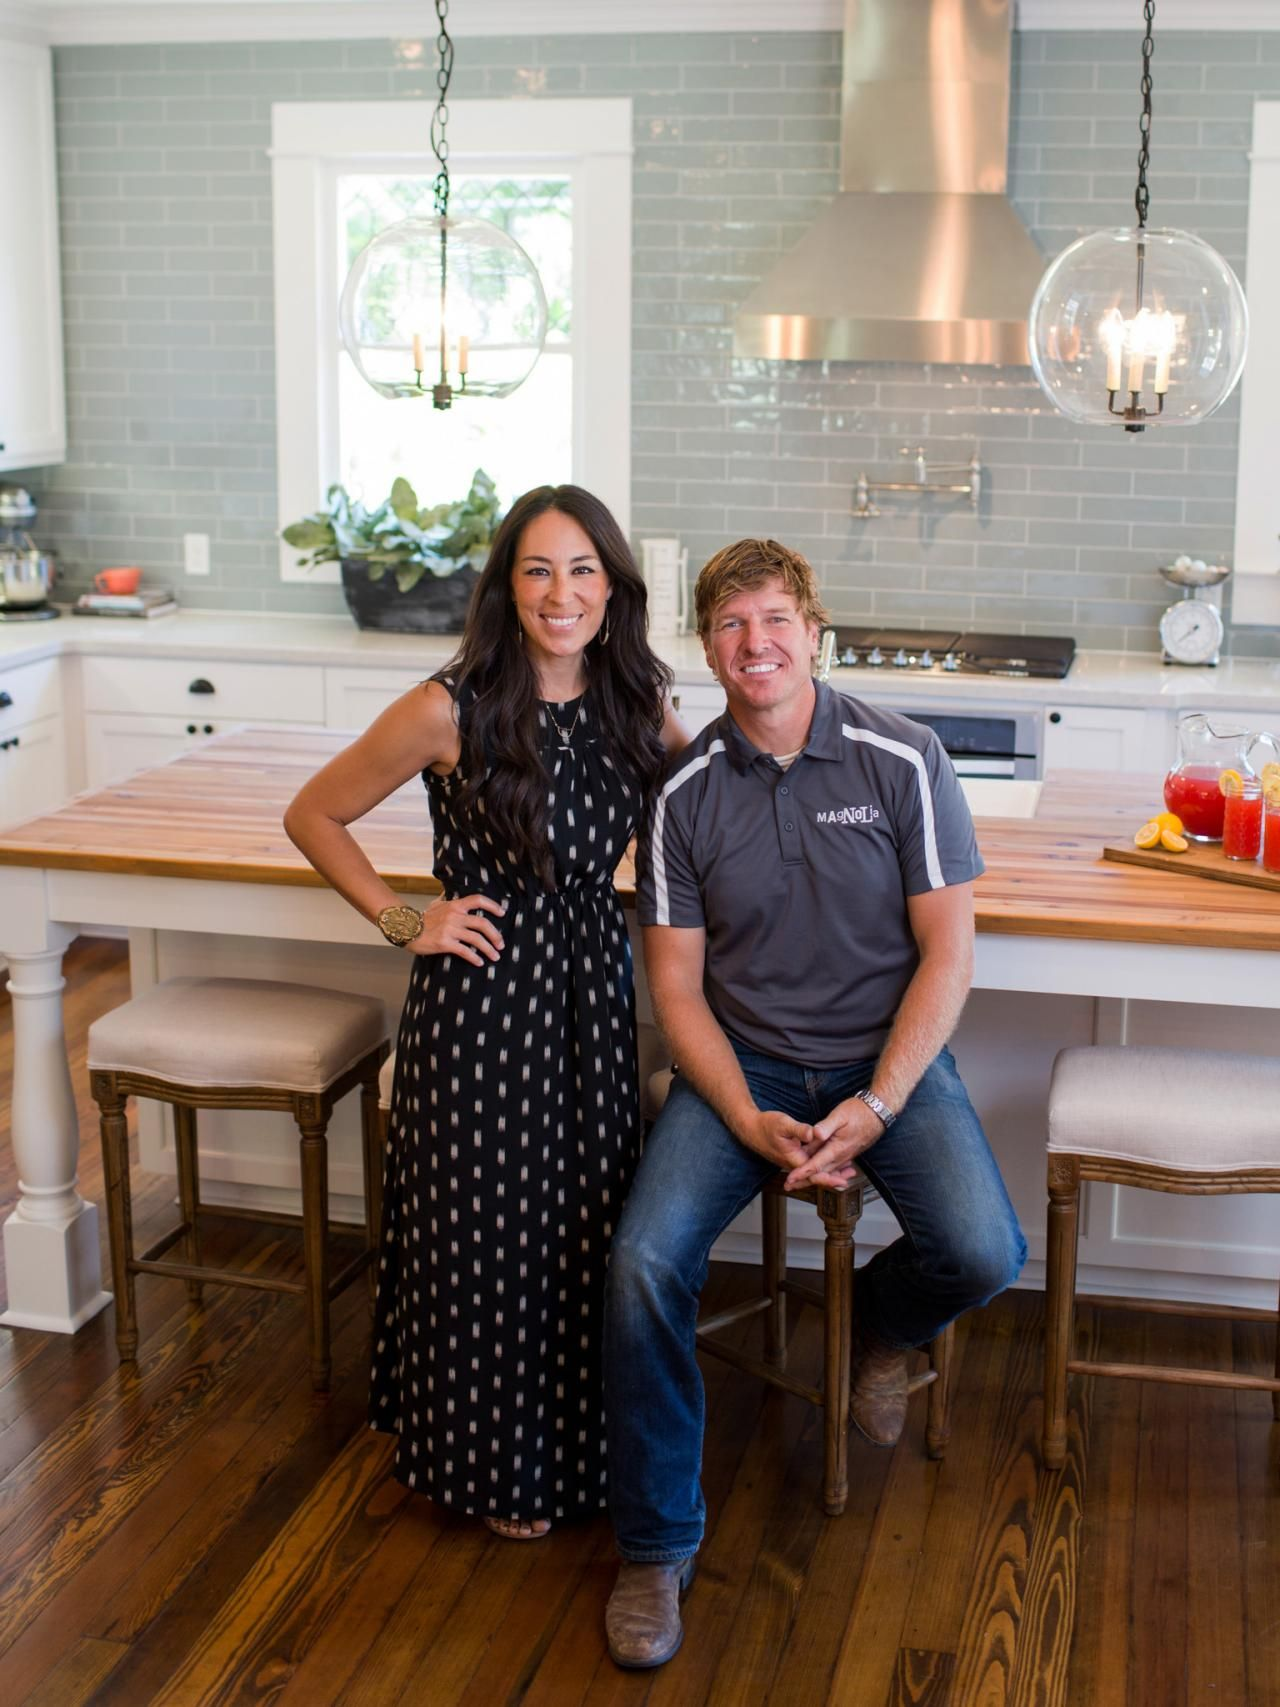 fixer upper season three sneak peek gallery home pinterest fliesenfarbe neues badezimmer. Black Bedroom Furniture Sets. Home Design Ideas